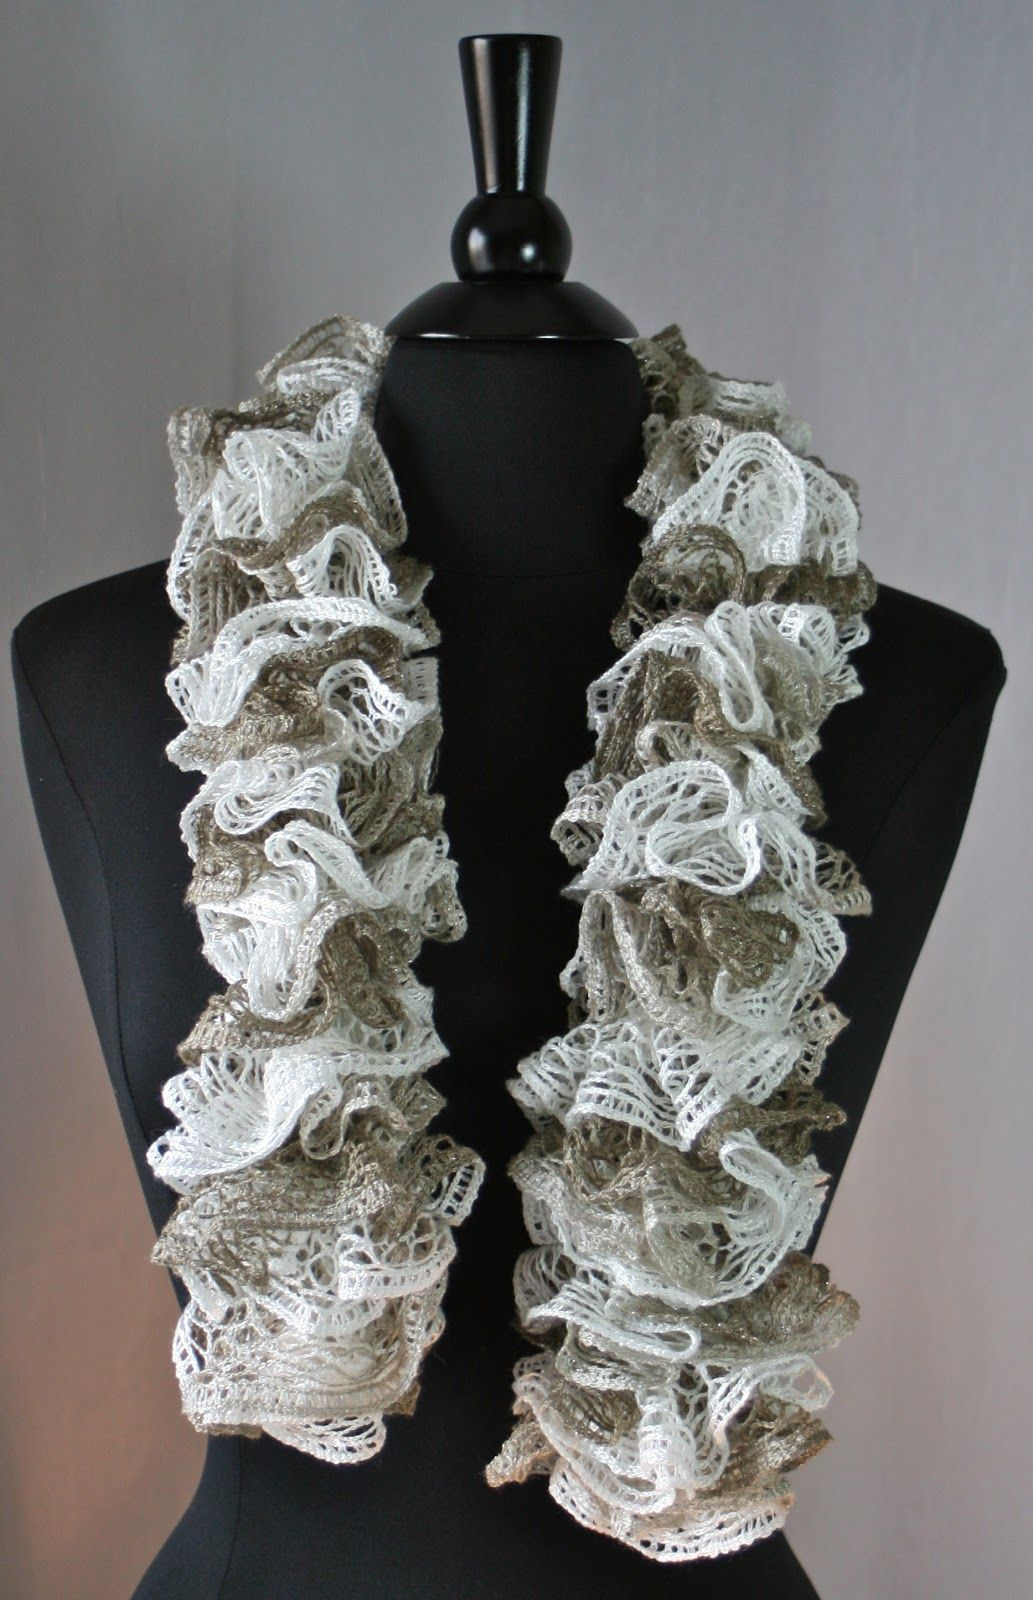 Ruffled Scarf Crochet Instructions | Knots-n-Knits: Crocheted ...